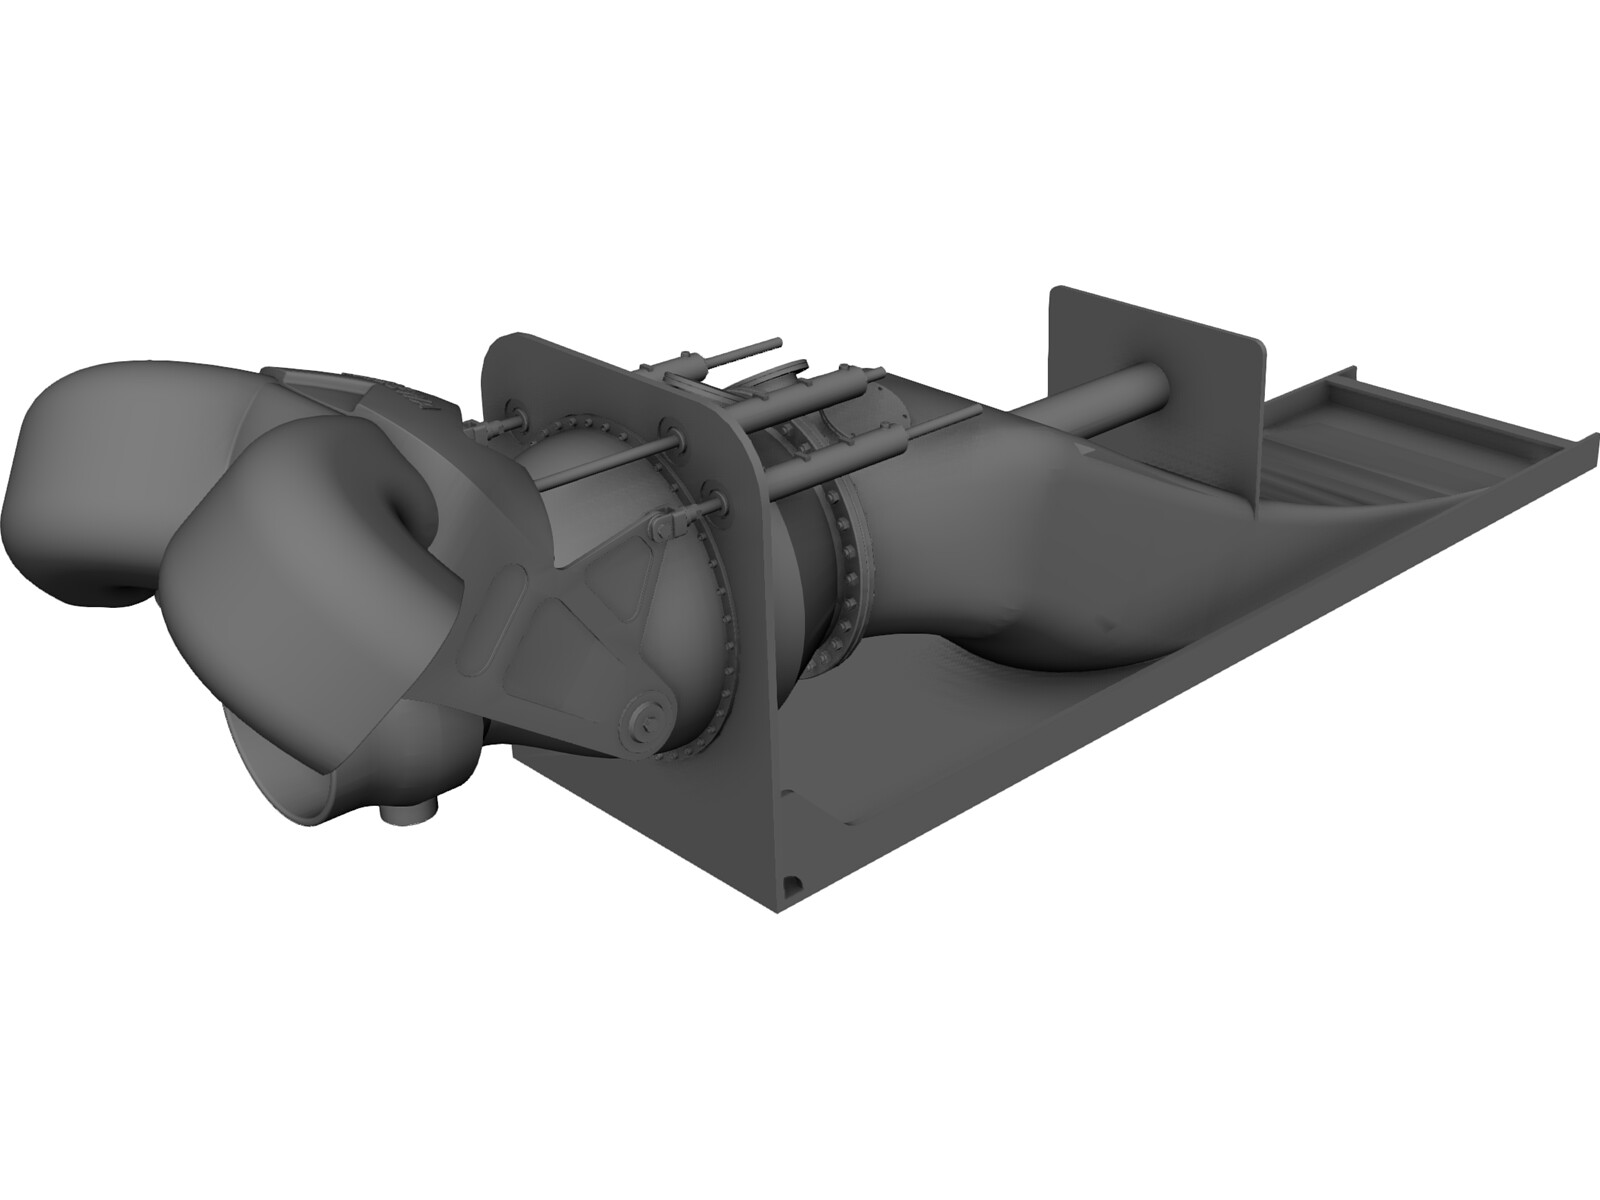 Rolls-Royce Waterjet 3D Model